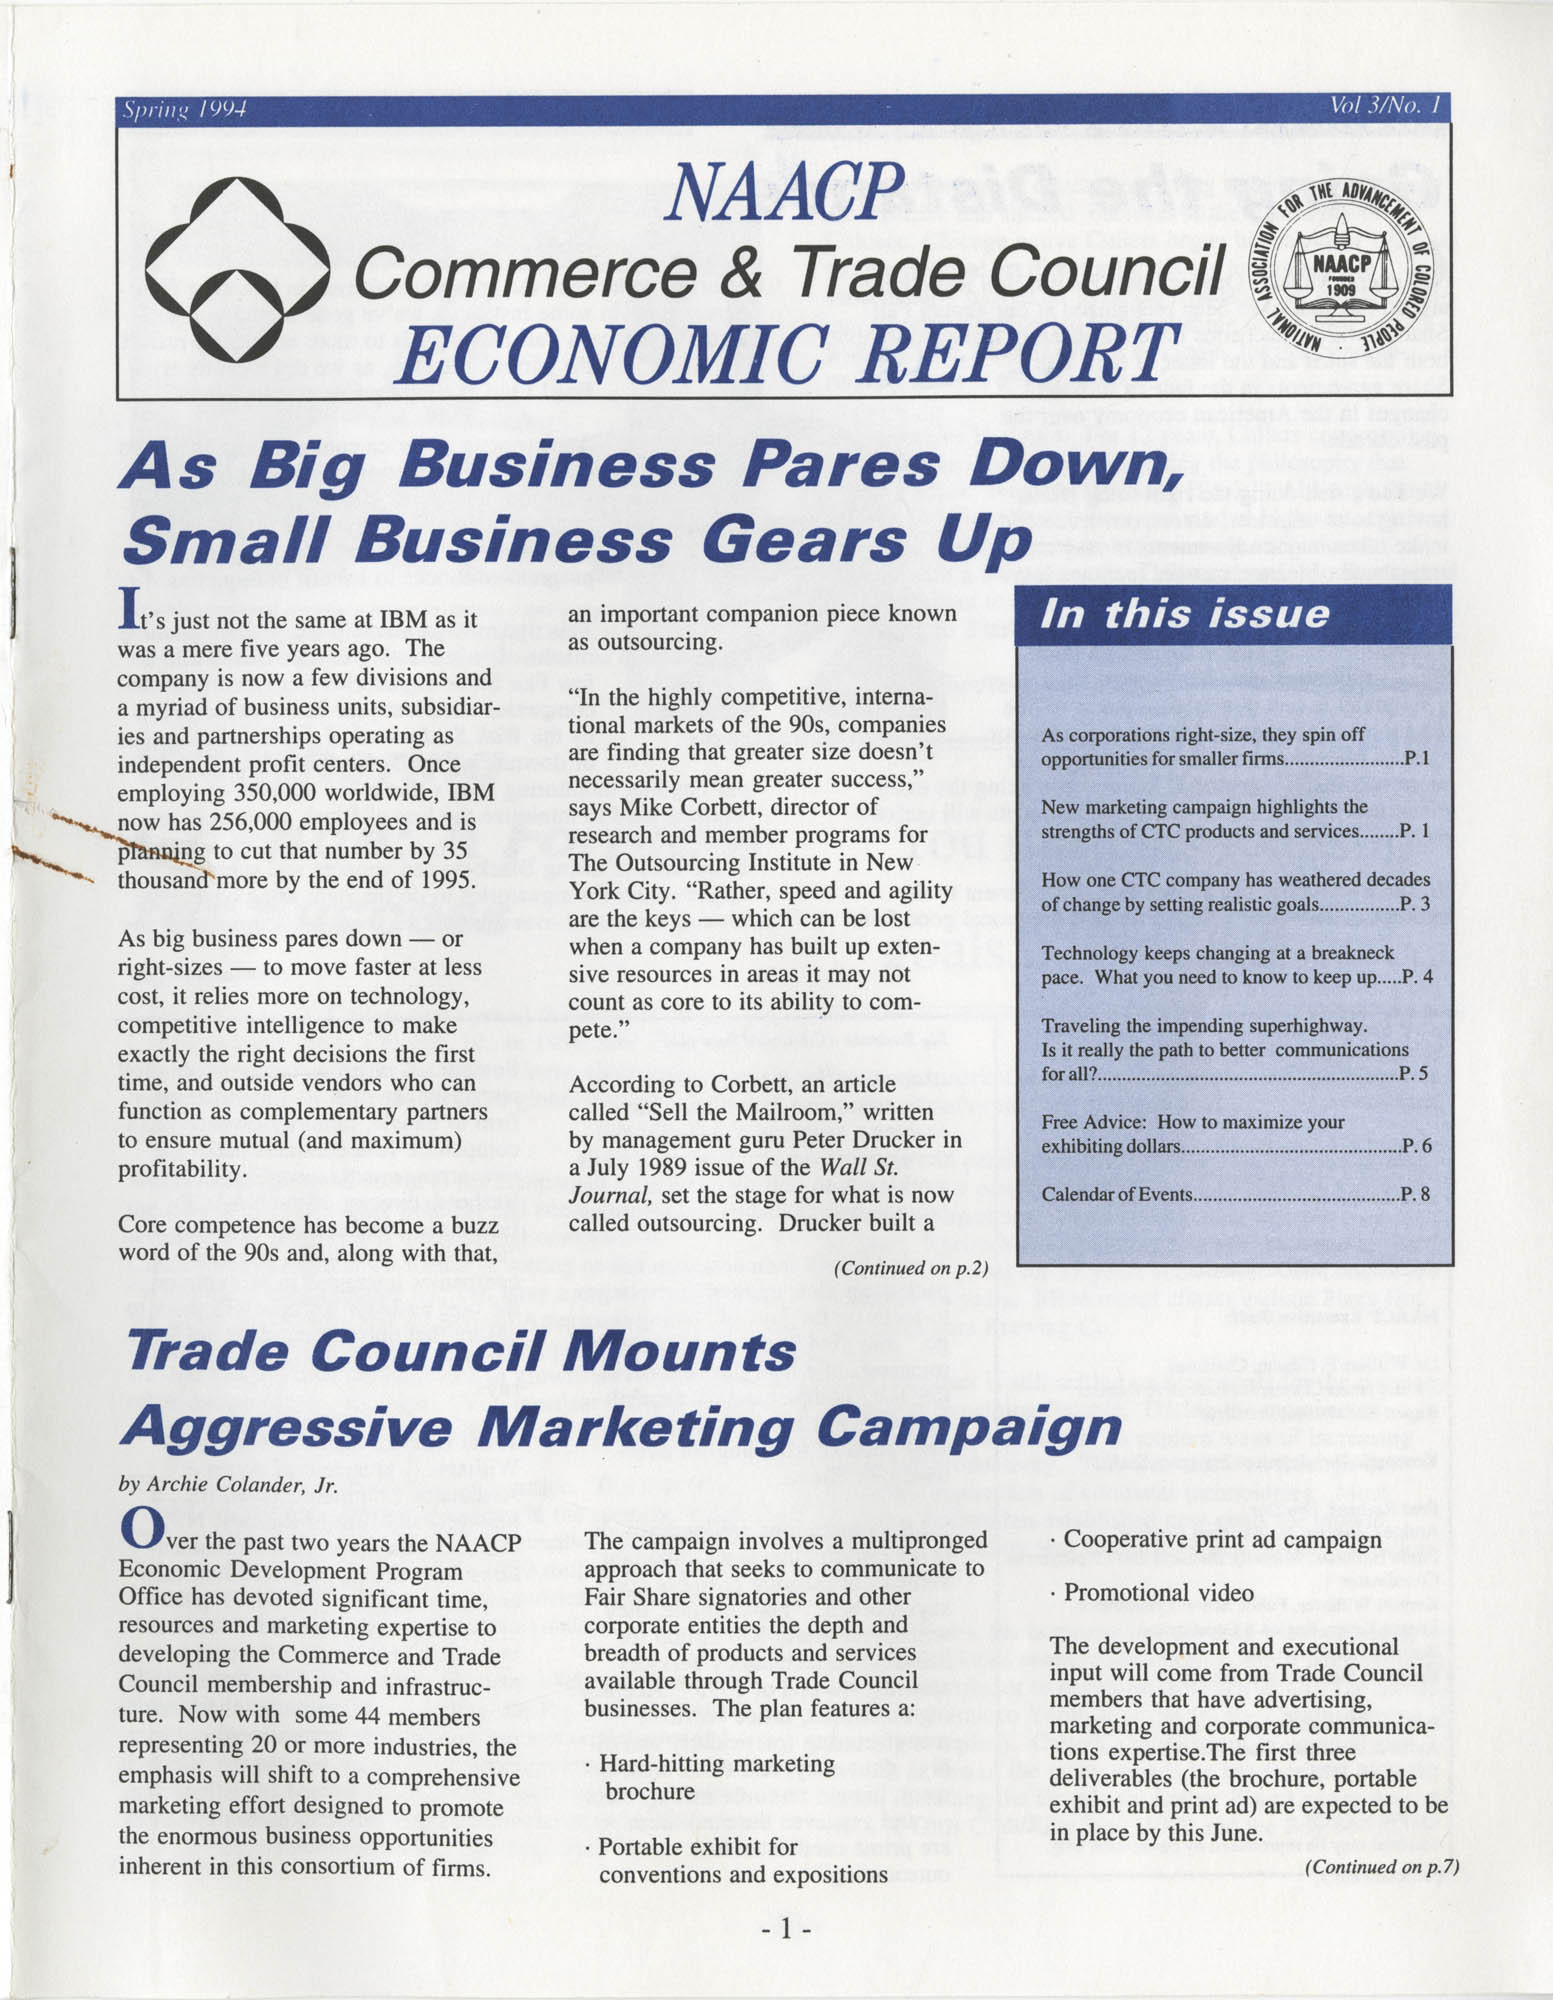 NAACP Commerce and Trade Council Economic Report, Spring 1994, Vol. 3, No. 1, Page 1